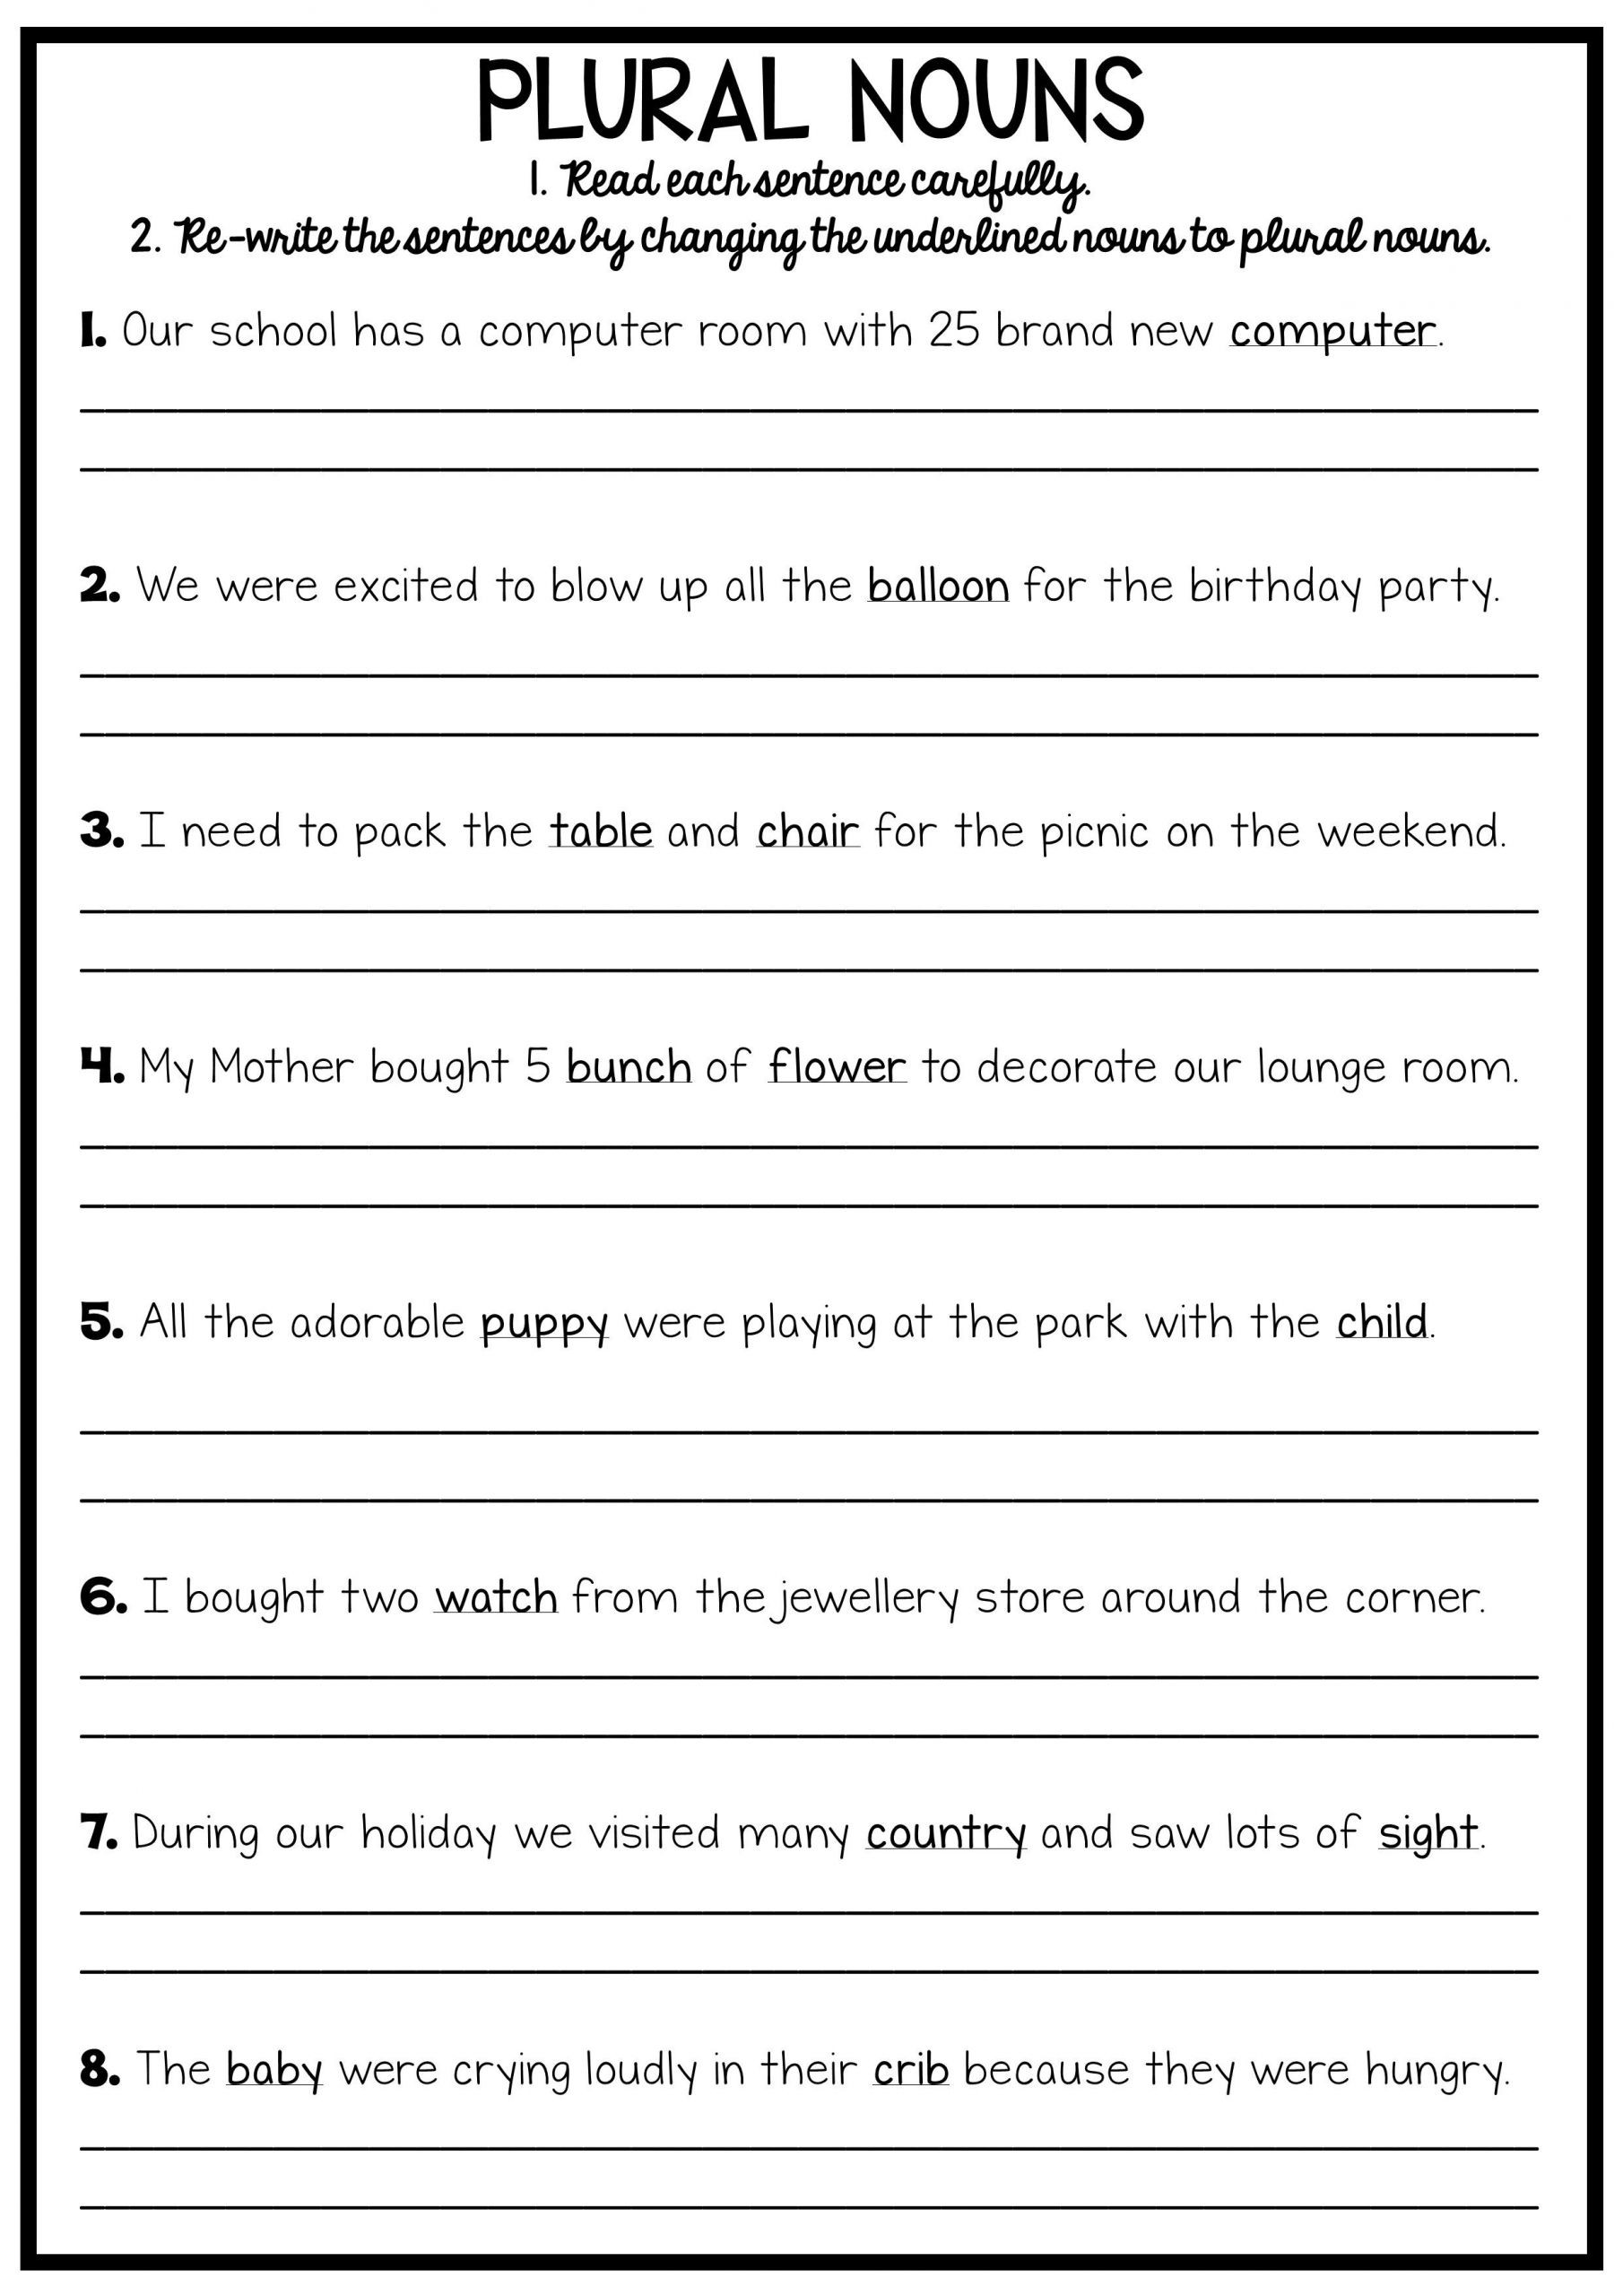 Grammar Worksheets 8th Grade Grammar Worksheets 8th Grade English Printable Reading